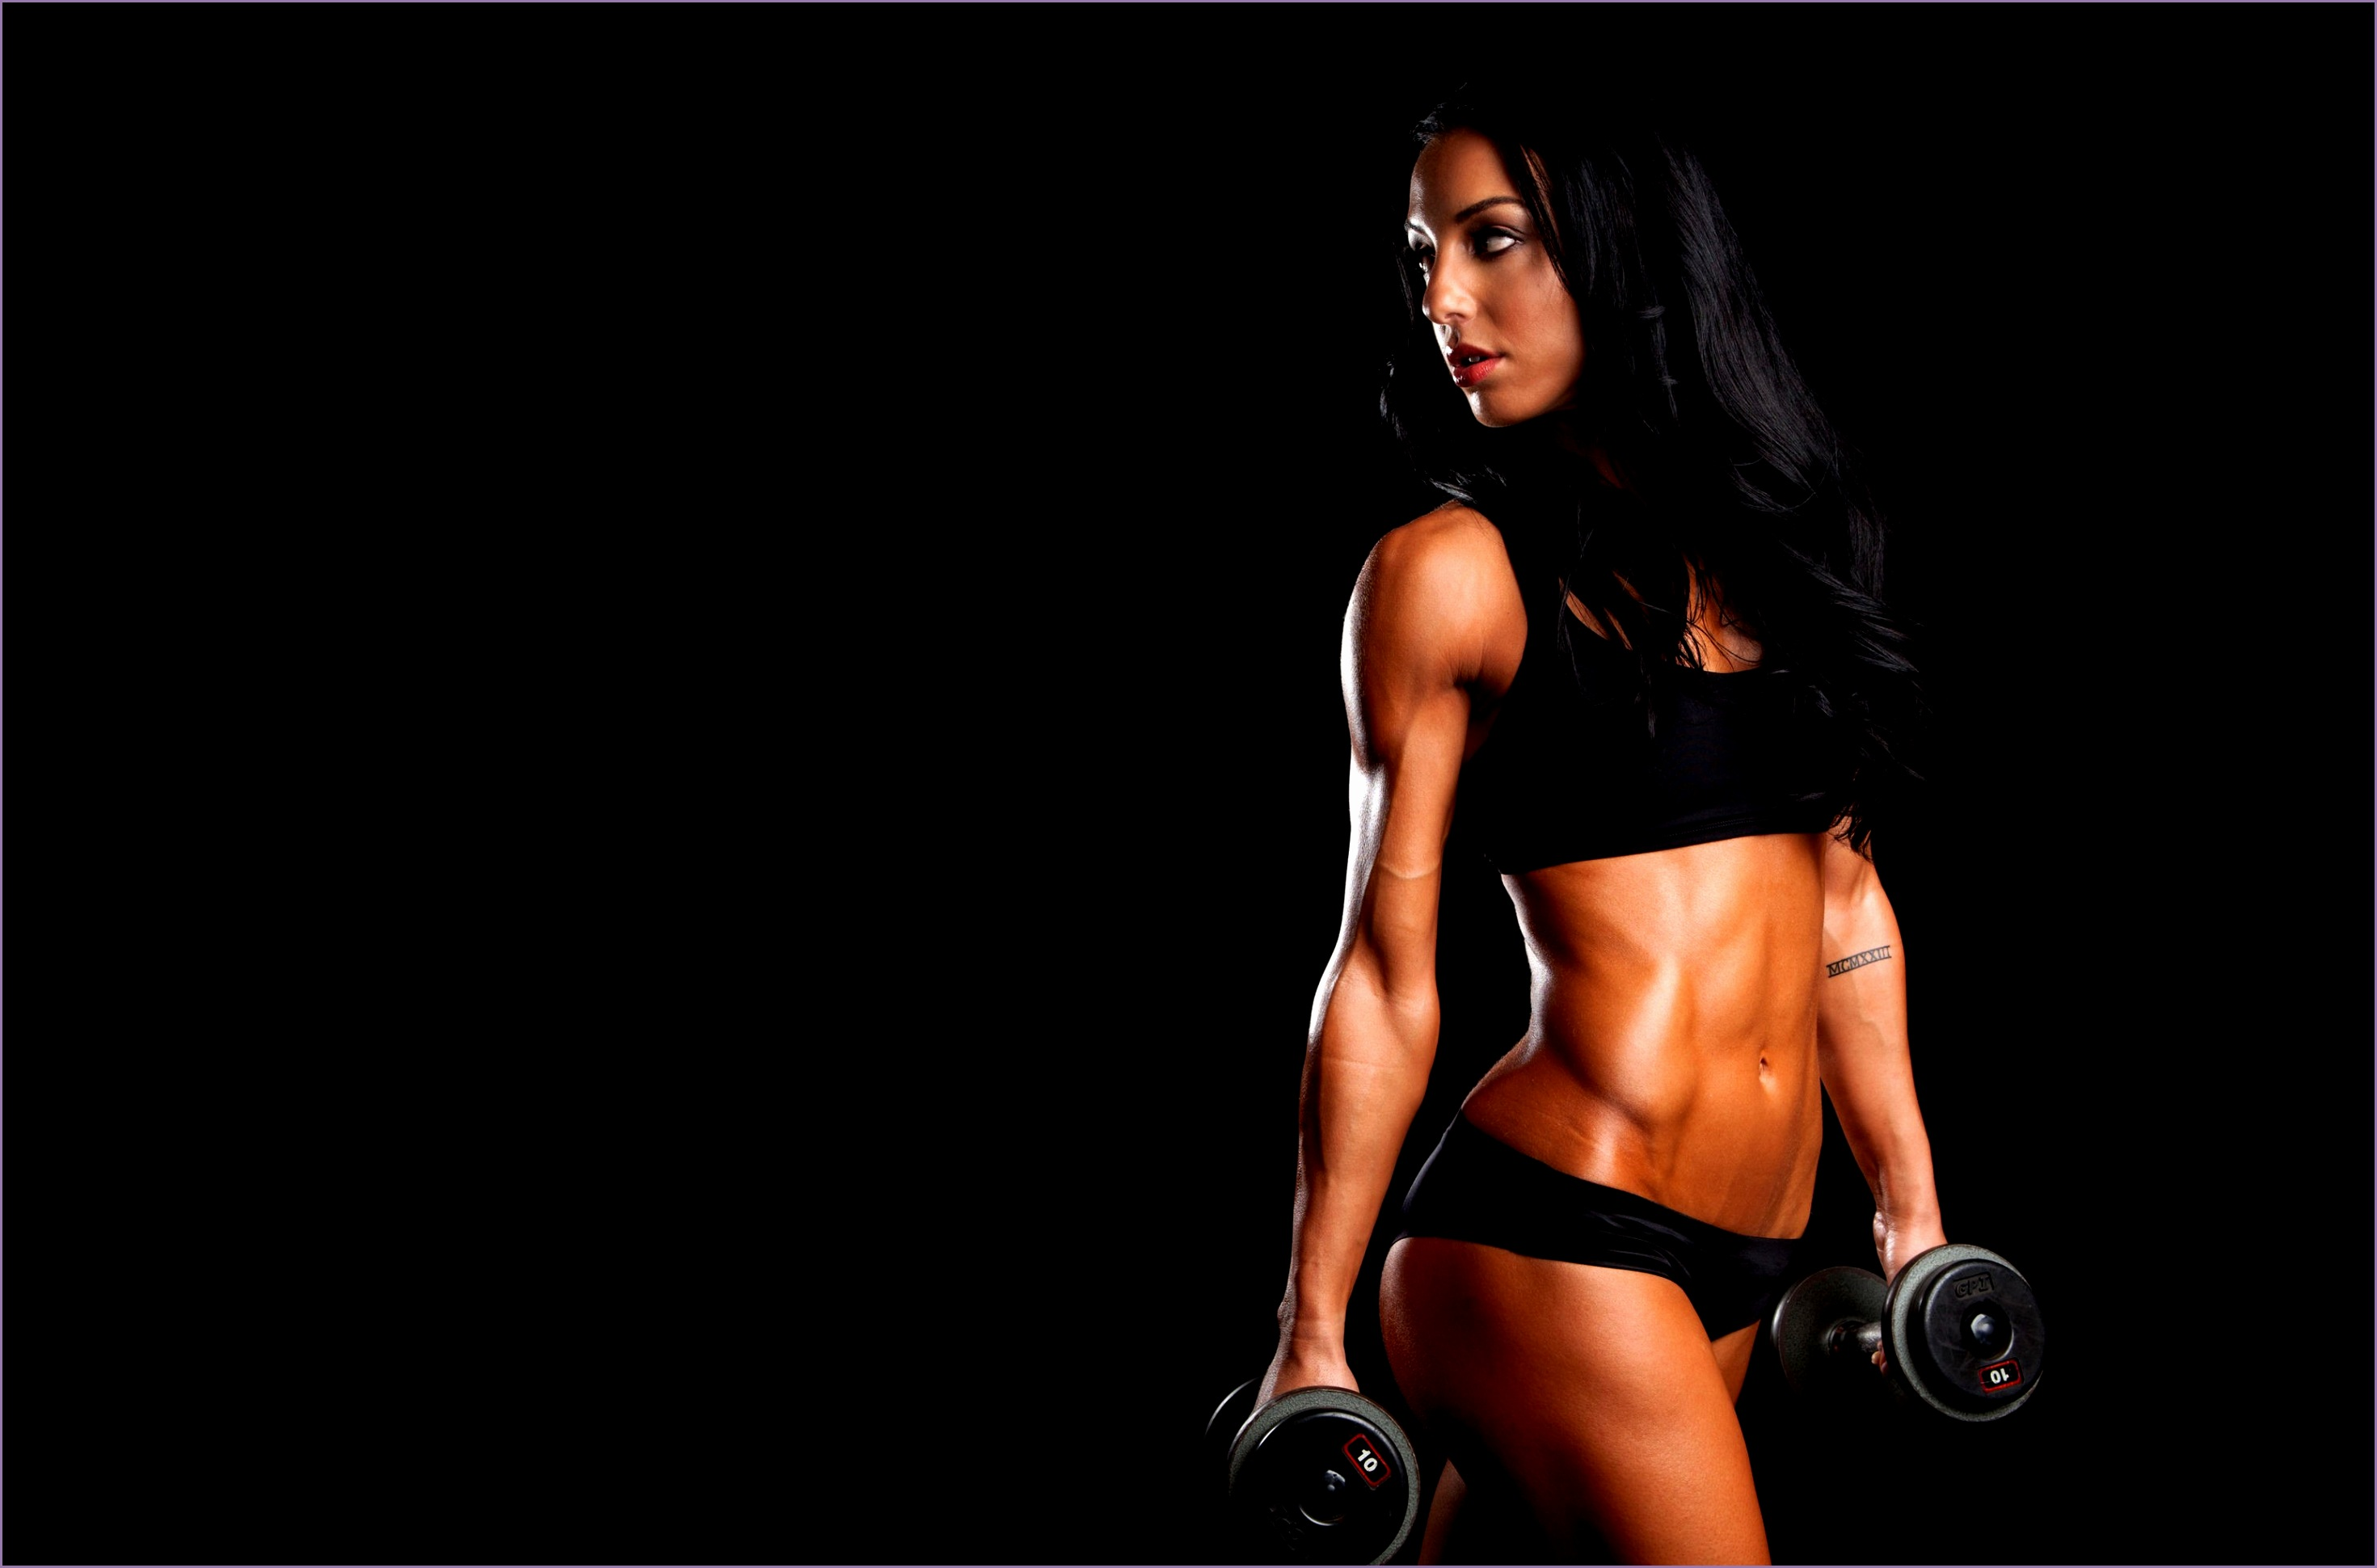 Women Fitness Models Wallpaper Letbsa Inspirational Women Fitness Model Working Out Skinny Dumbbells Simple